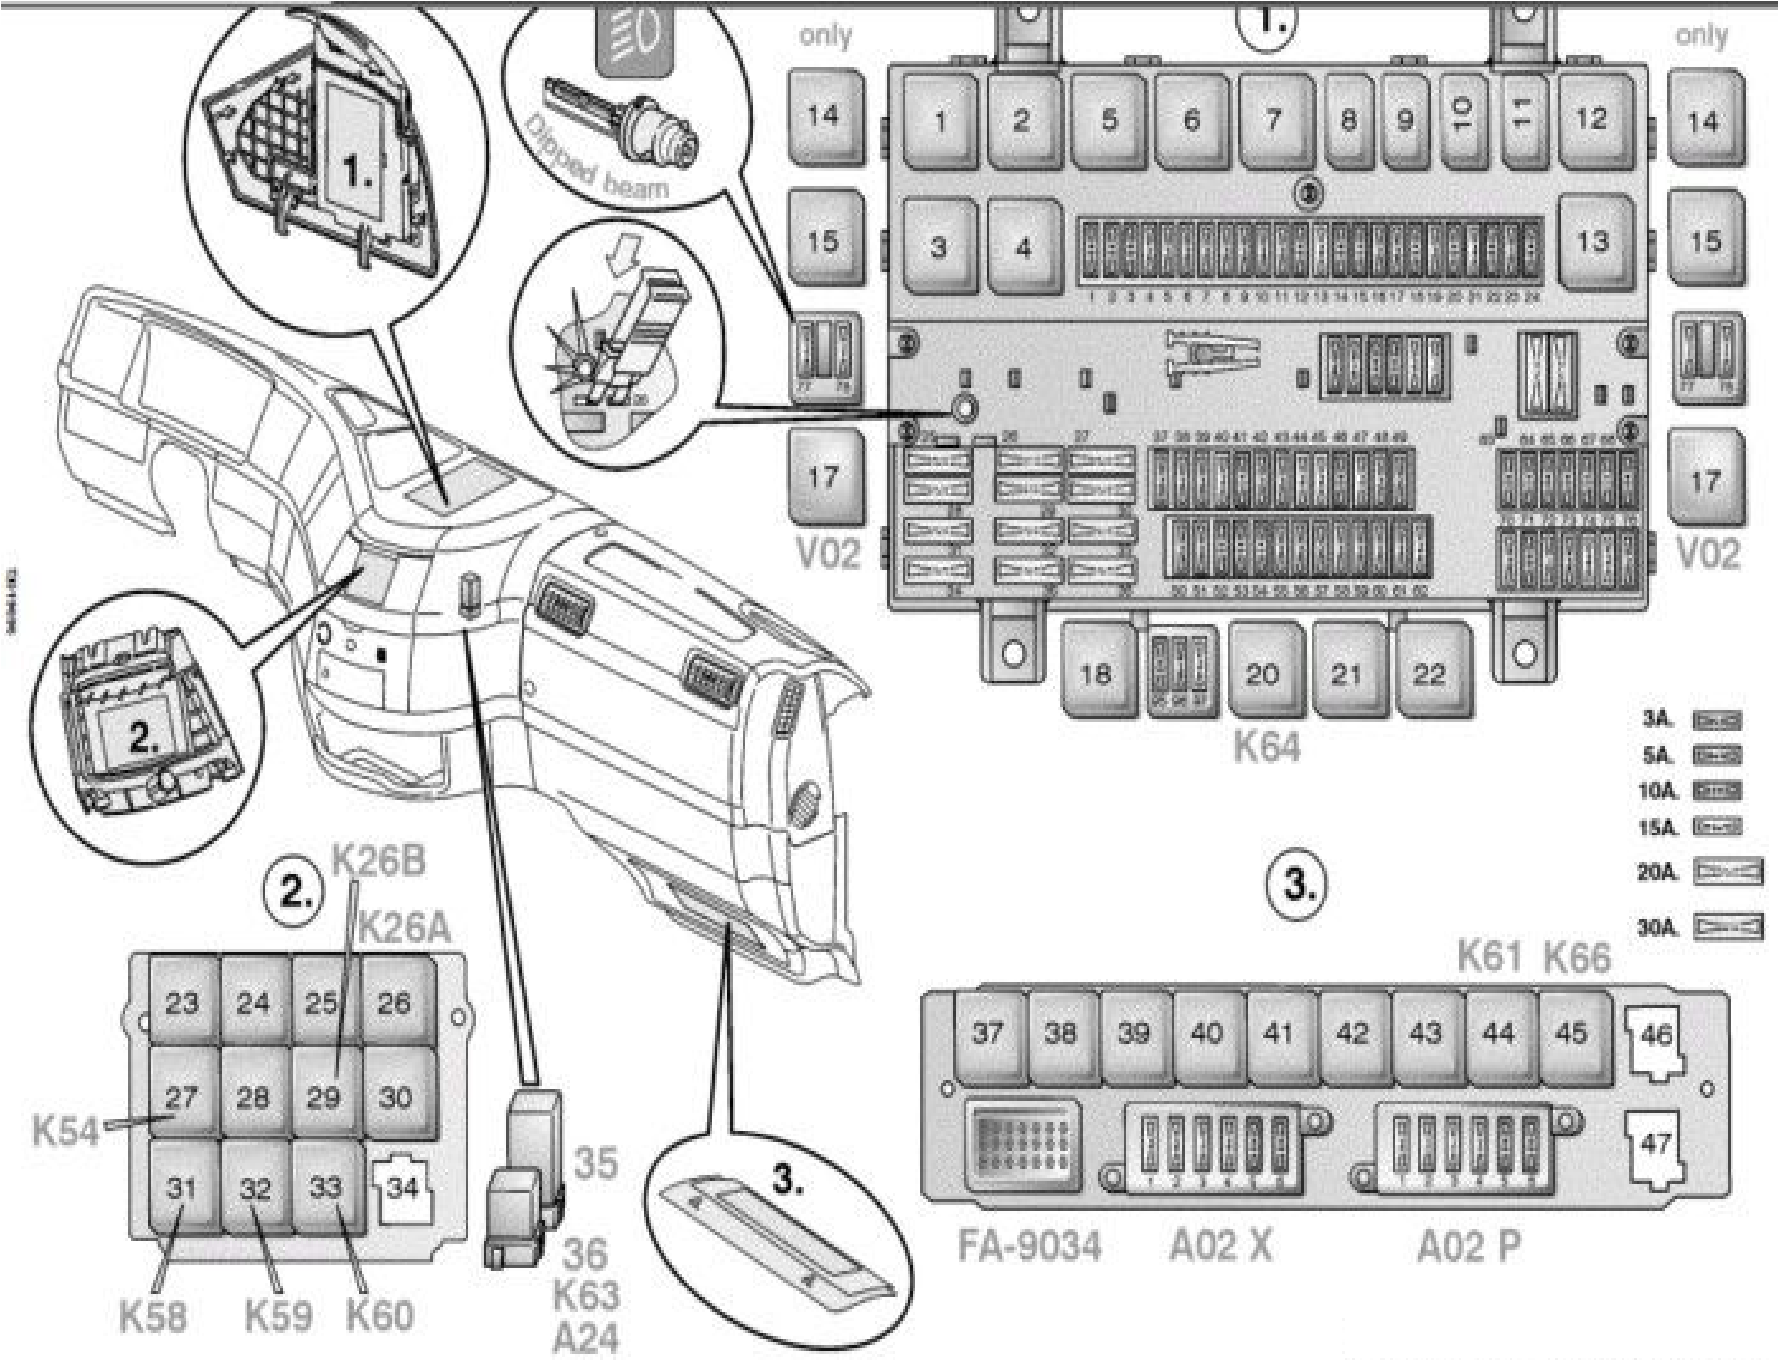 Volvo Mack Fuse Box Location - wiring diagram power-auto -  power-auto.ristorantegorgodelpo.it | Volvo Mack Fuse Box Location |  | Ristorante Gorgo del Po